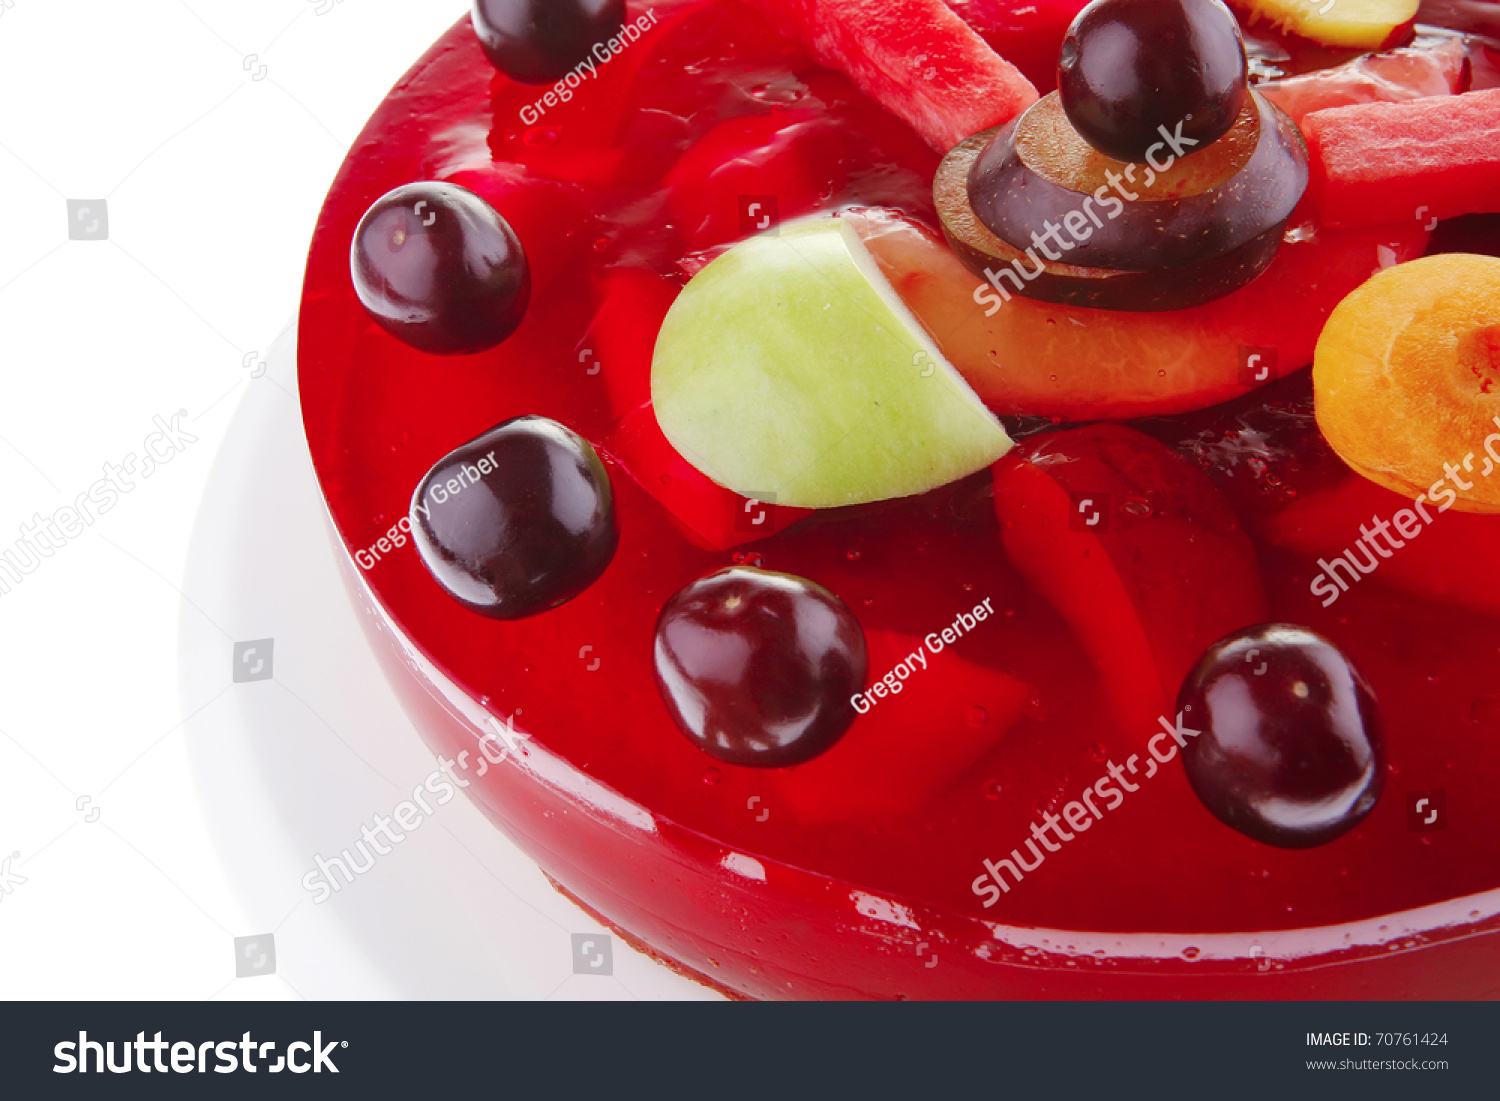 Red Jelly Cake Recipe: Image Of Cold Red Jelly Cake With Cherry And Watermelon